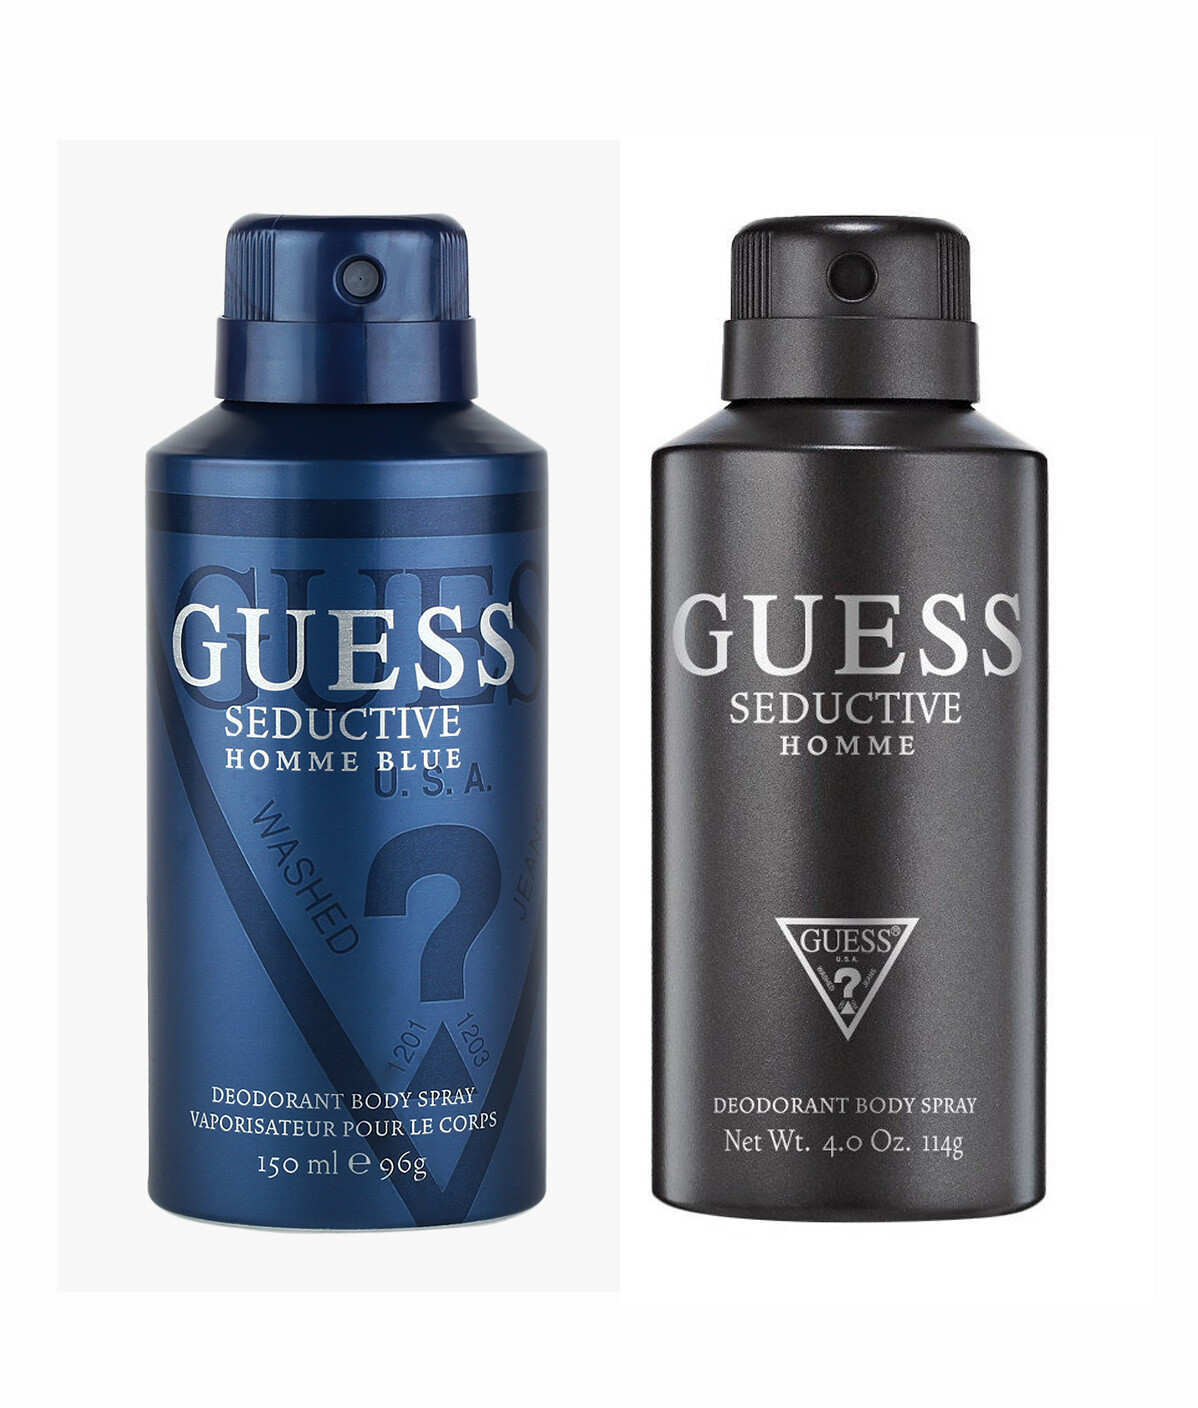 Guess Seductive Home Blue + Seductive Home Deo Combo Set - Pack of 2